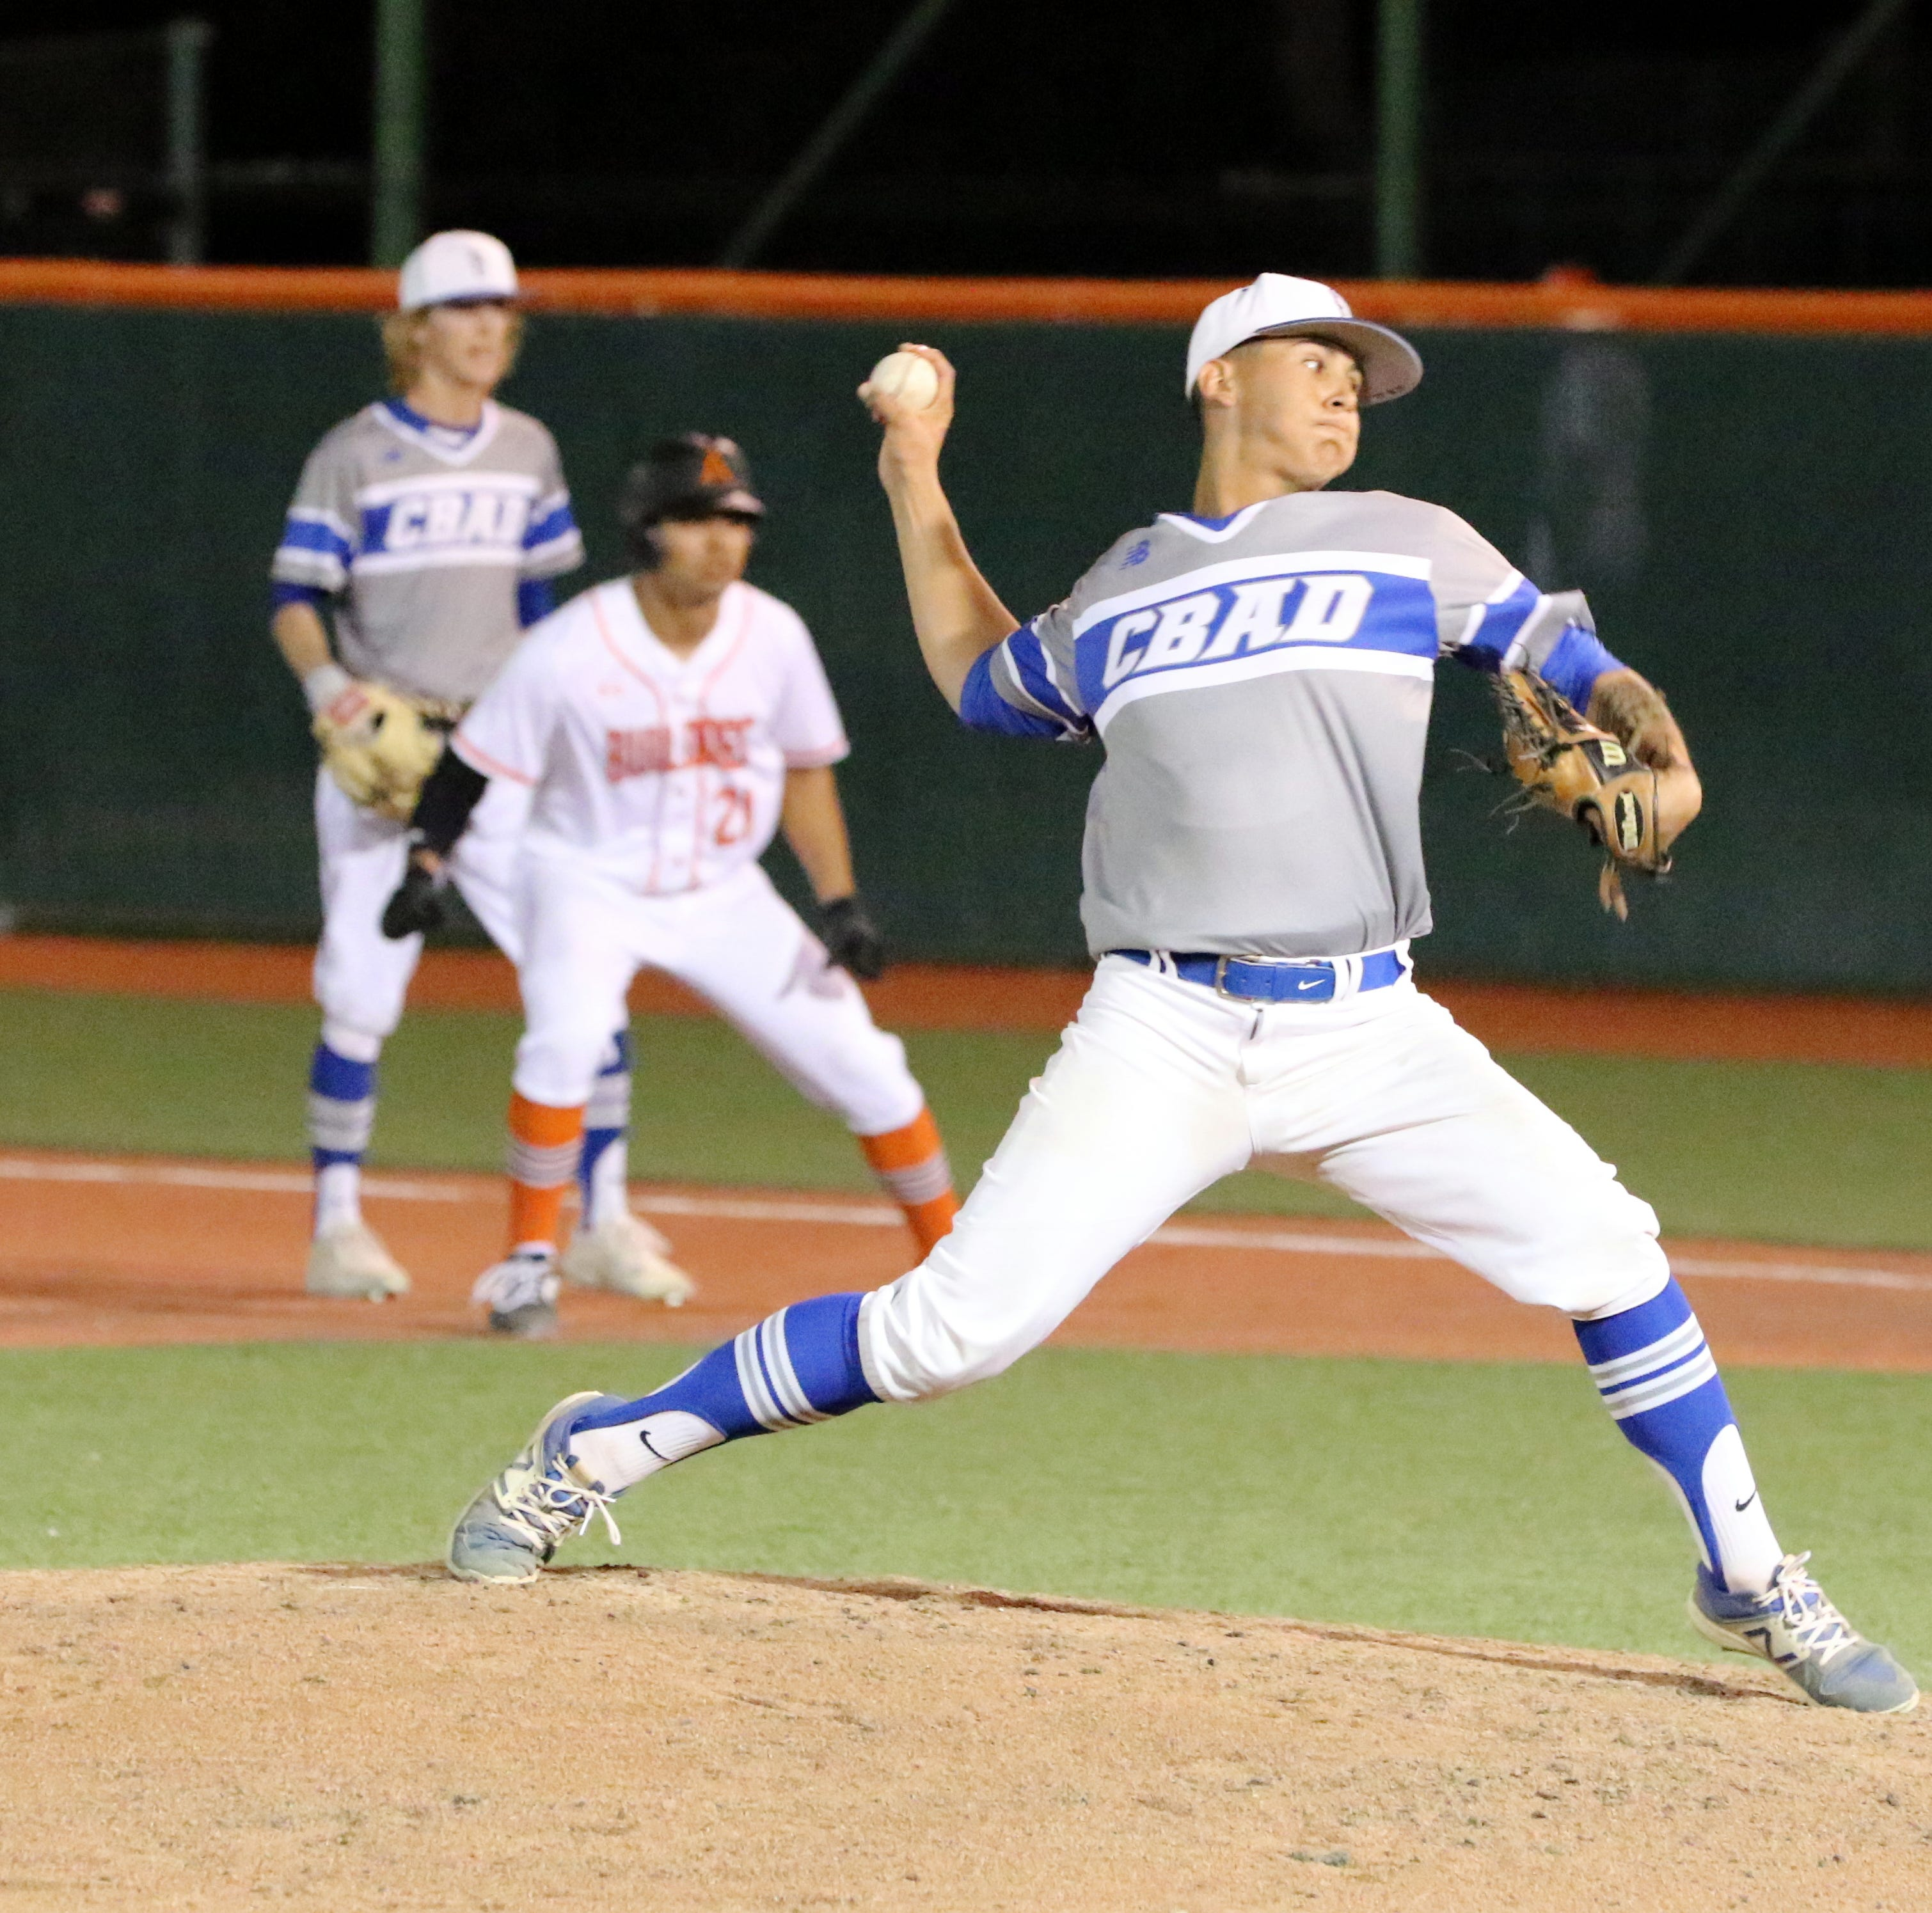 The Magnificent 7: Cavemen pitchers eye Blue Trophy at State